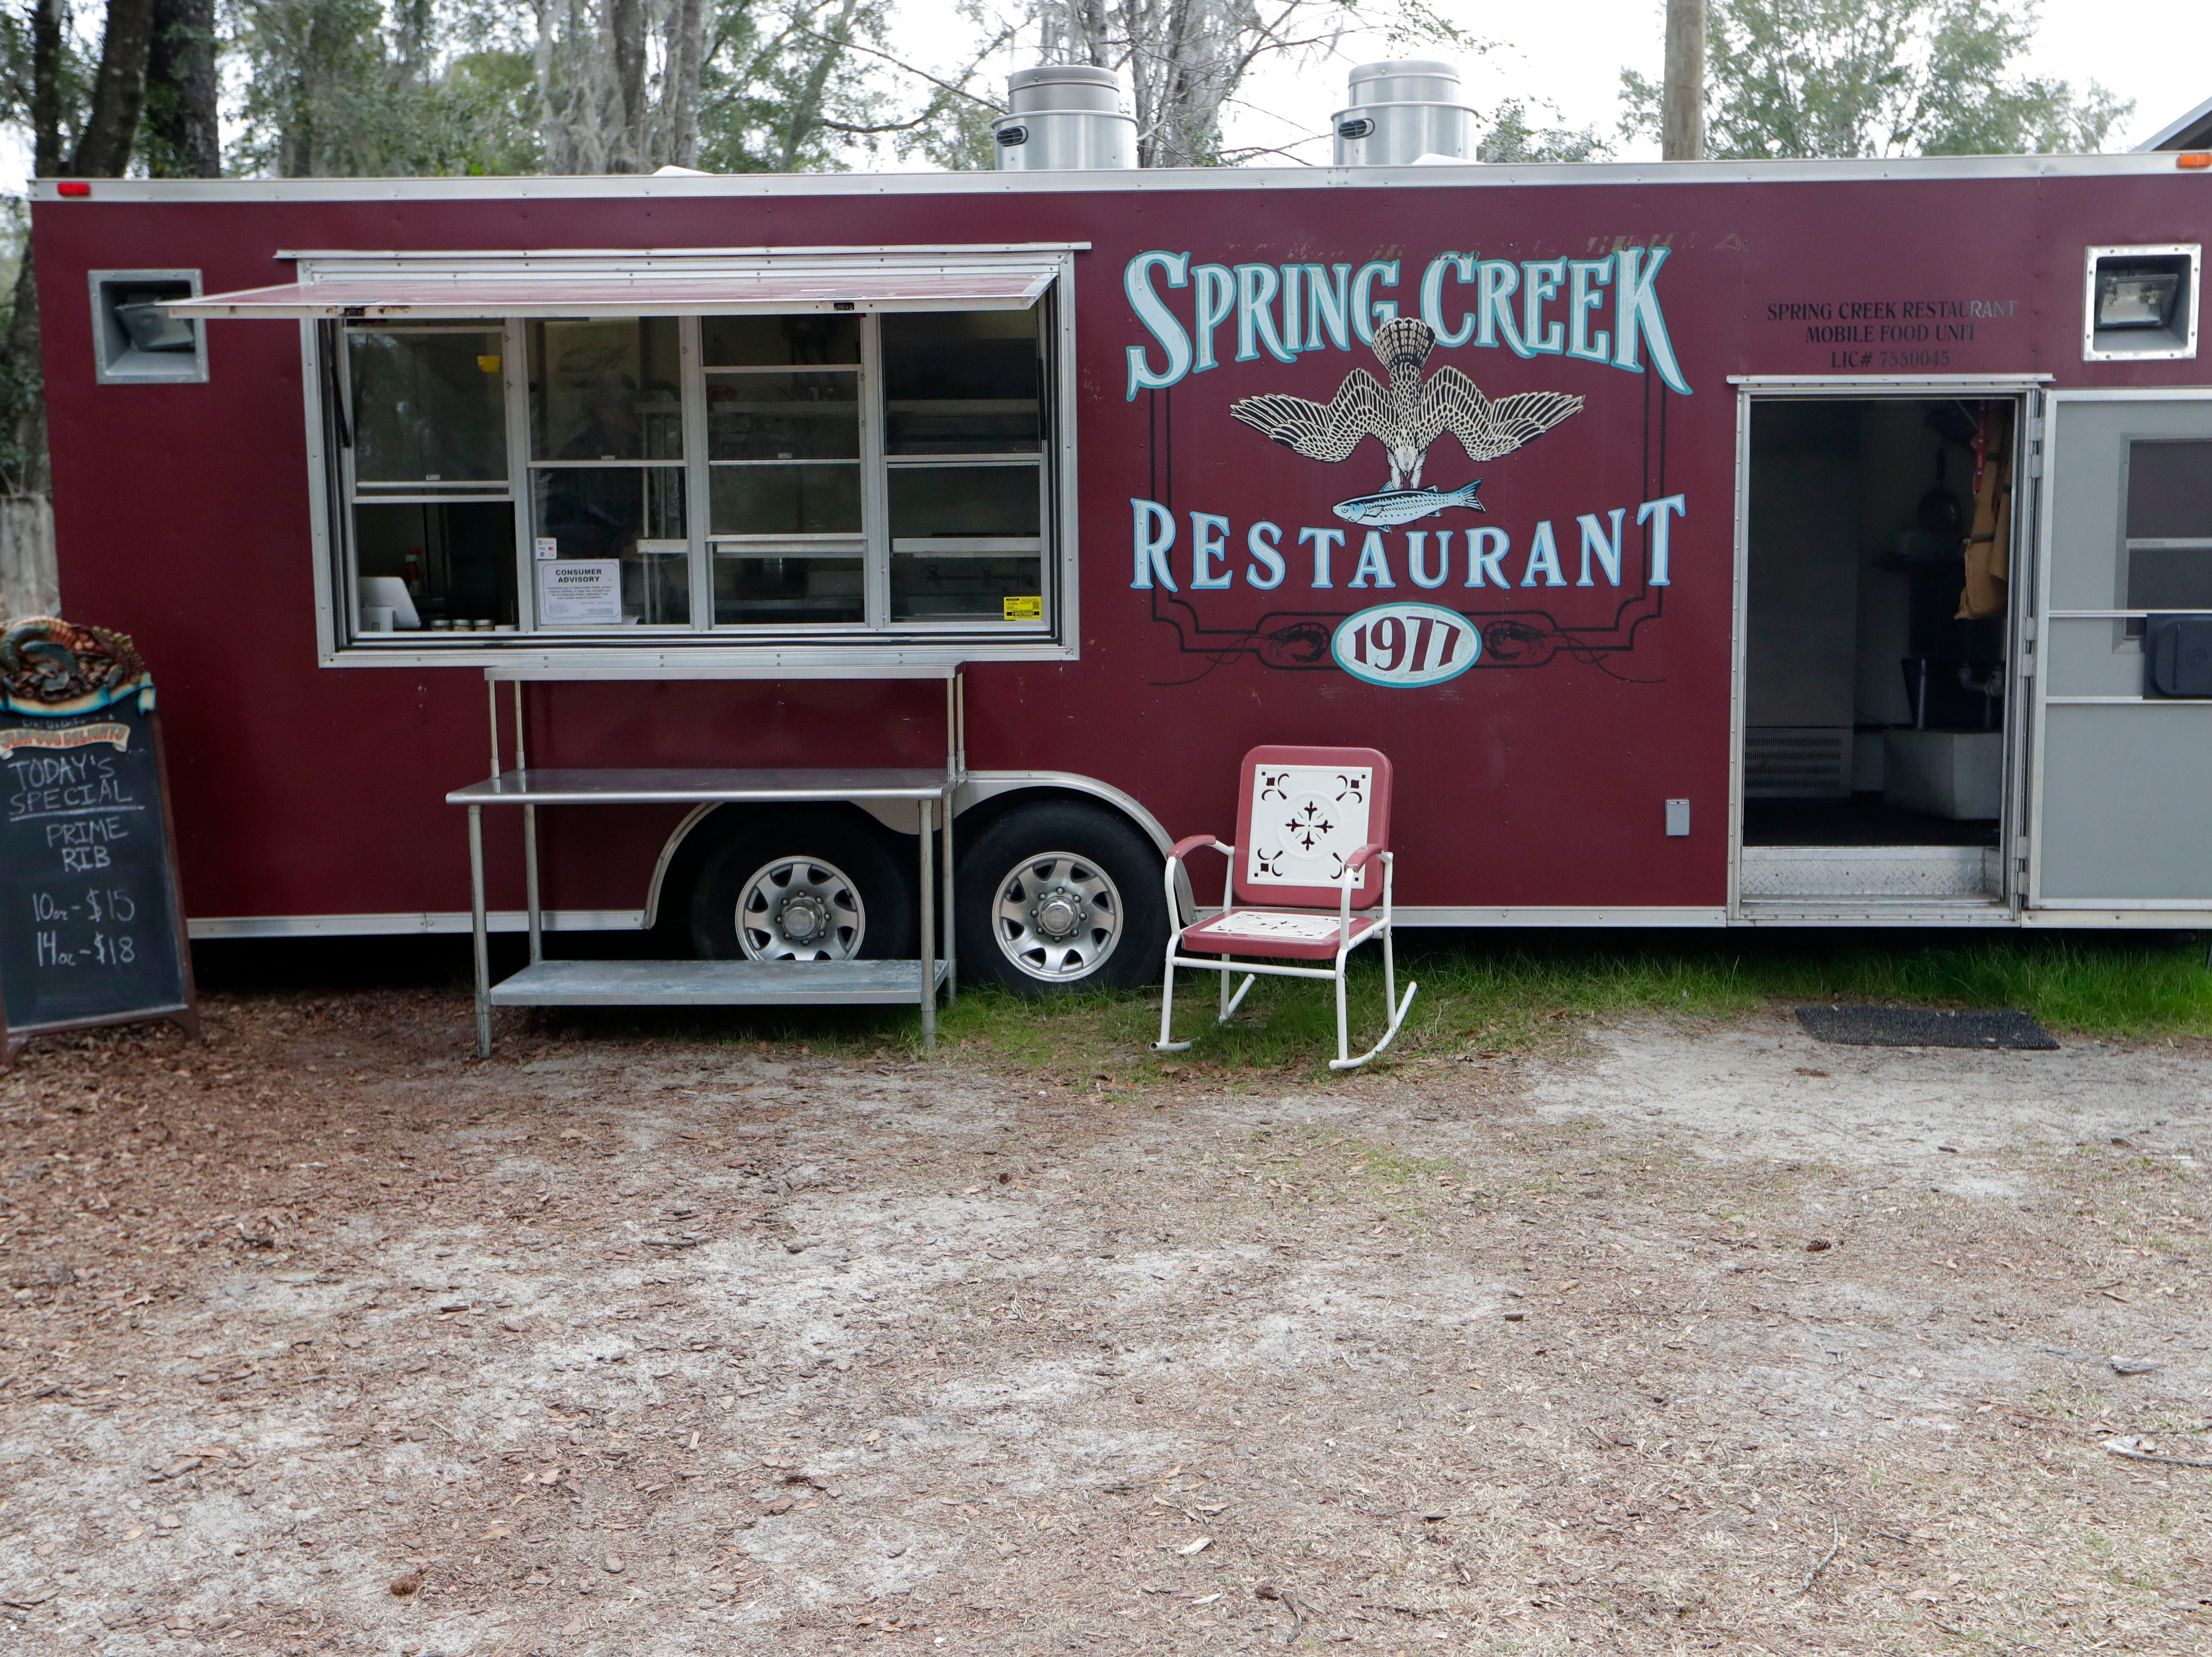 The Spring Creek Restaurant food truck sits behind the Centenial Bank in Crawfordville, Fla. on Ochlockonee Rd. open for business, Friday, Feb. 1, 2019.